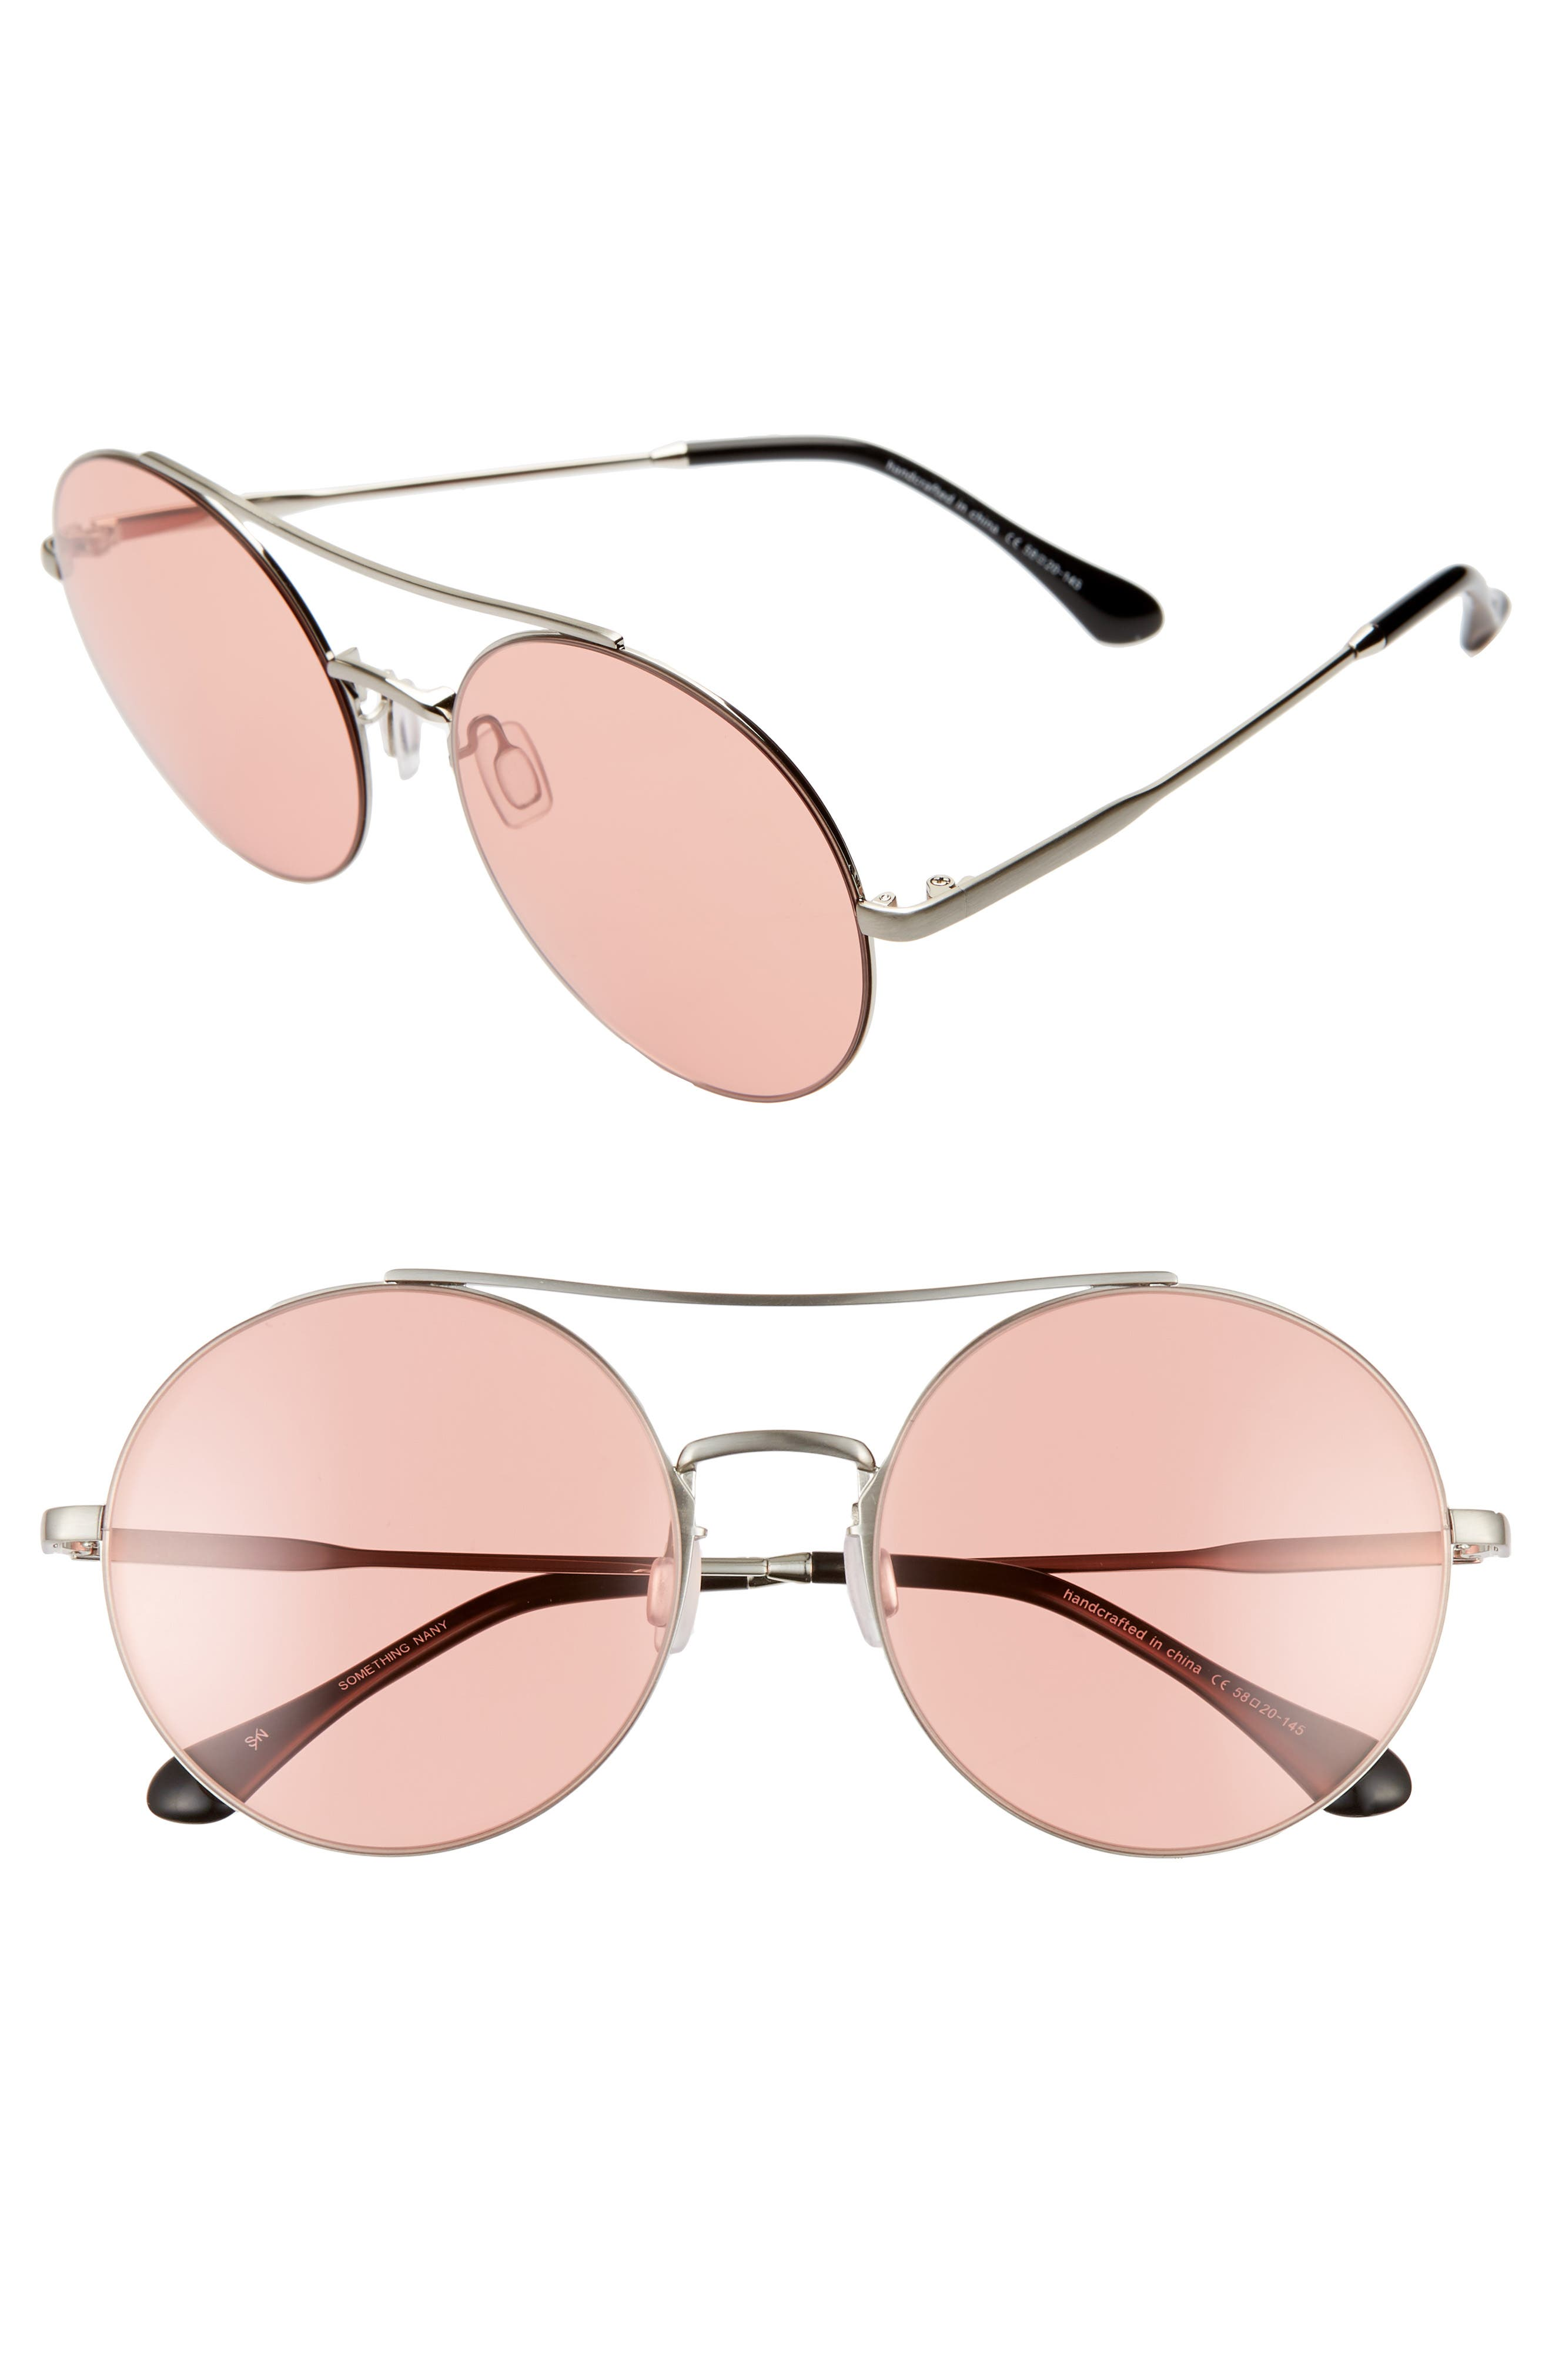 Something Navy 5m Round Aviator Sunglasses - Silver/ Pink (Nordstrom Exclusive)